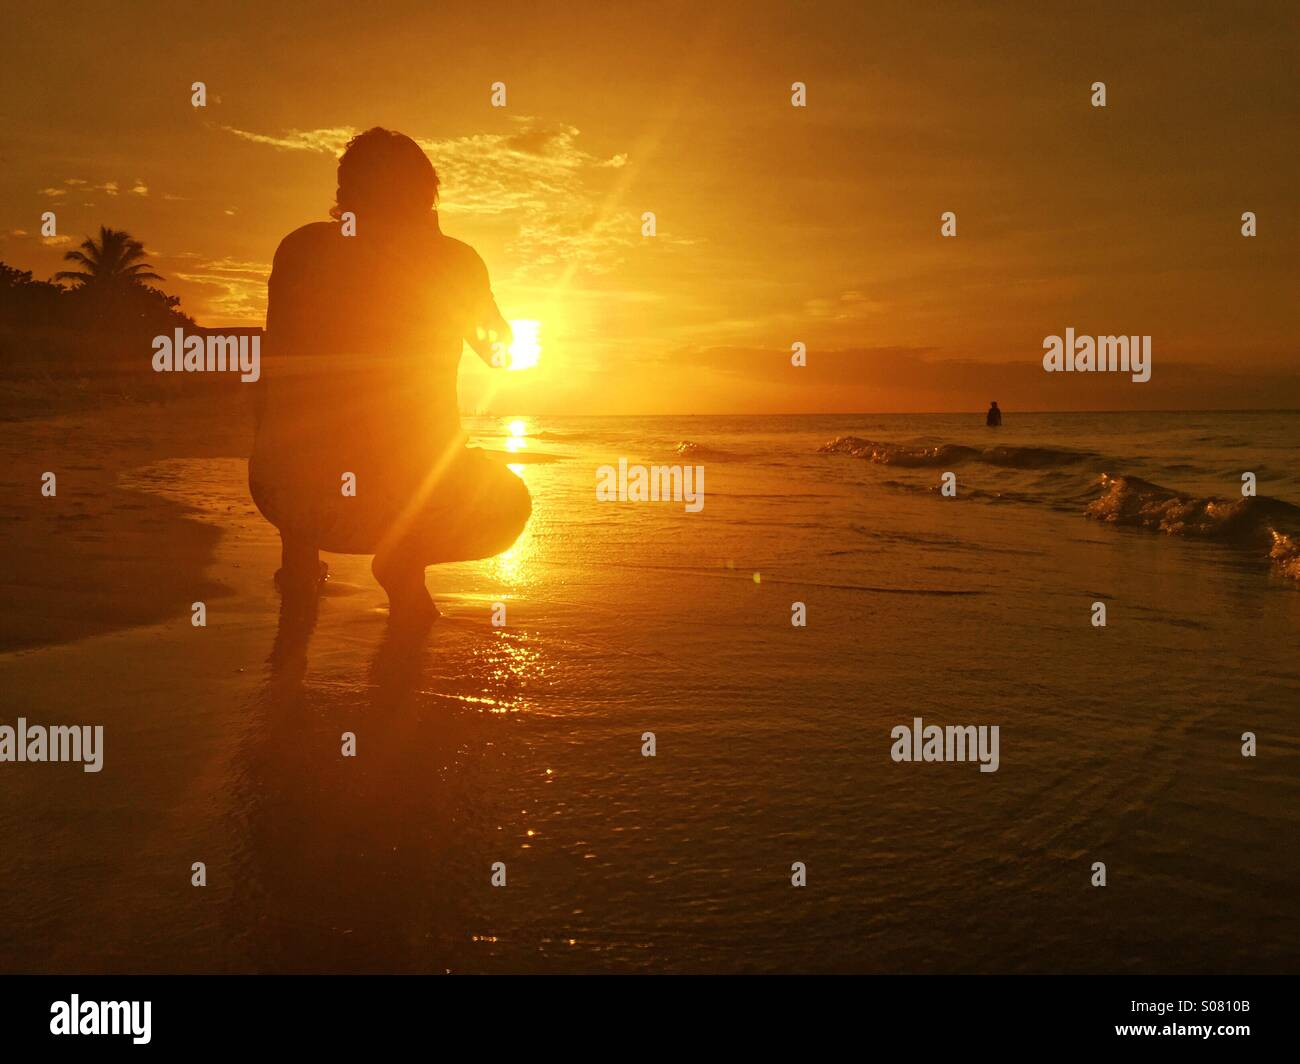 Taking a picture at sunset on the beach - Stock Image